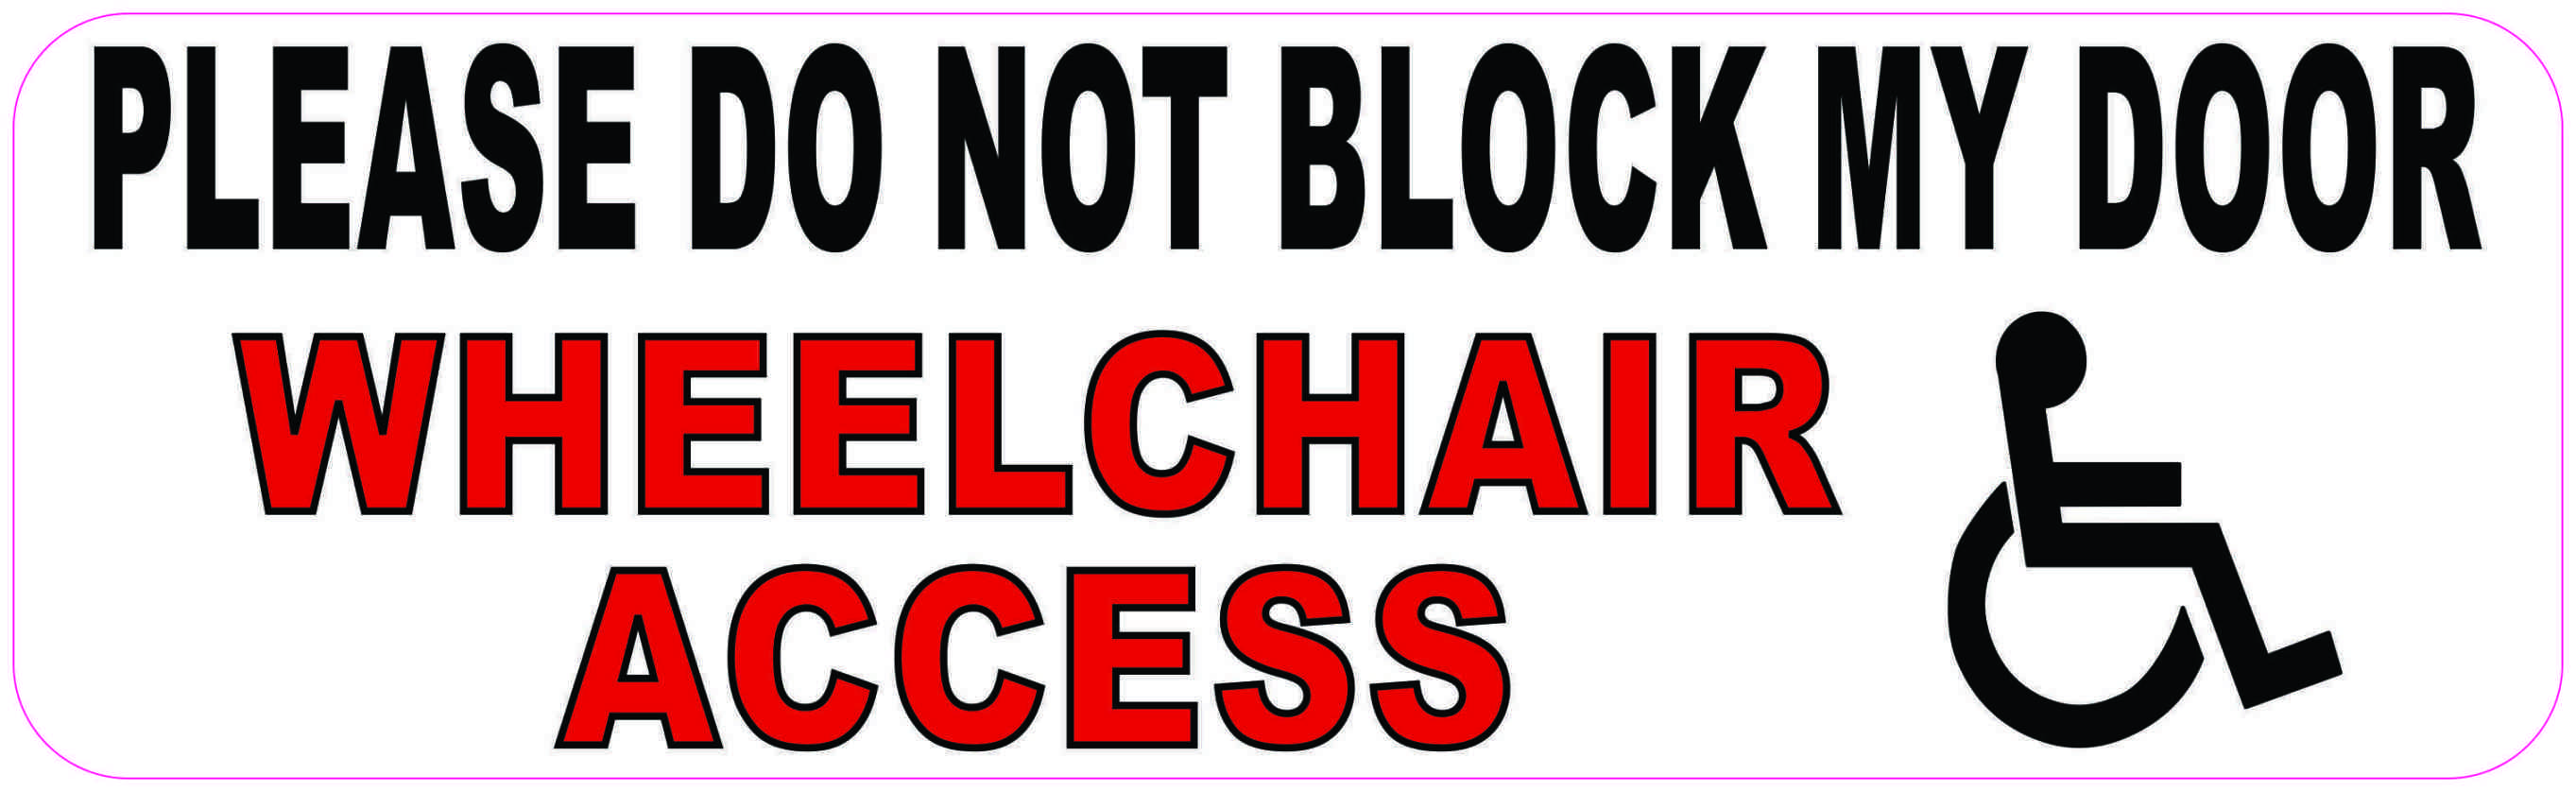 10in X 3in Do Not Block Wheelchair Access Magnet Black Letter Words Lettering